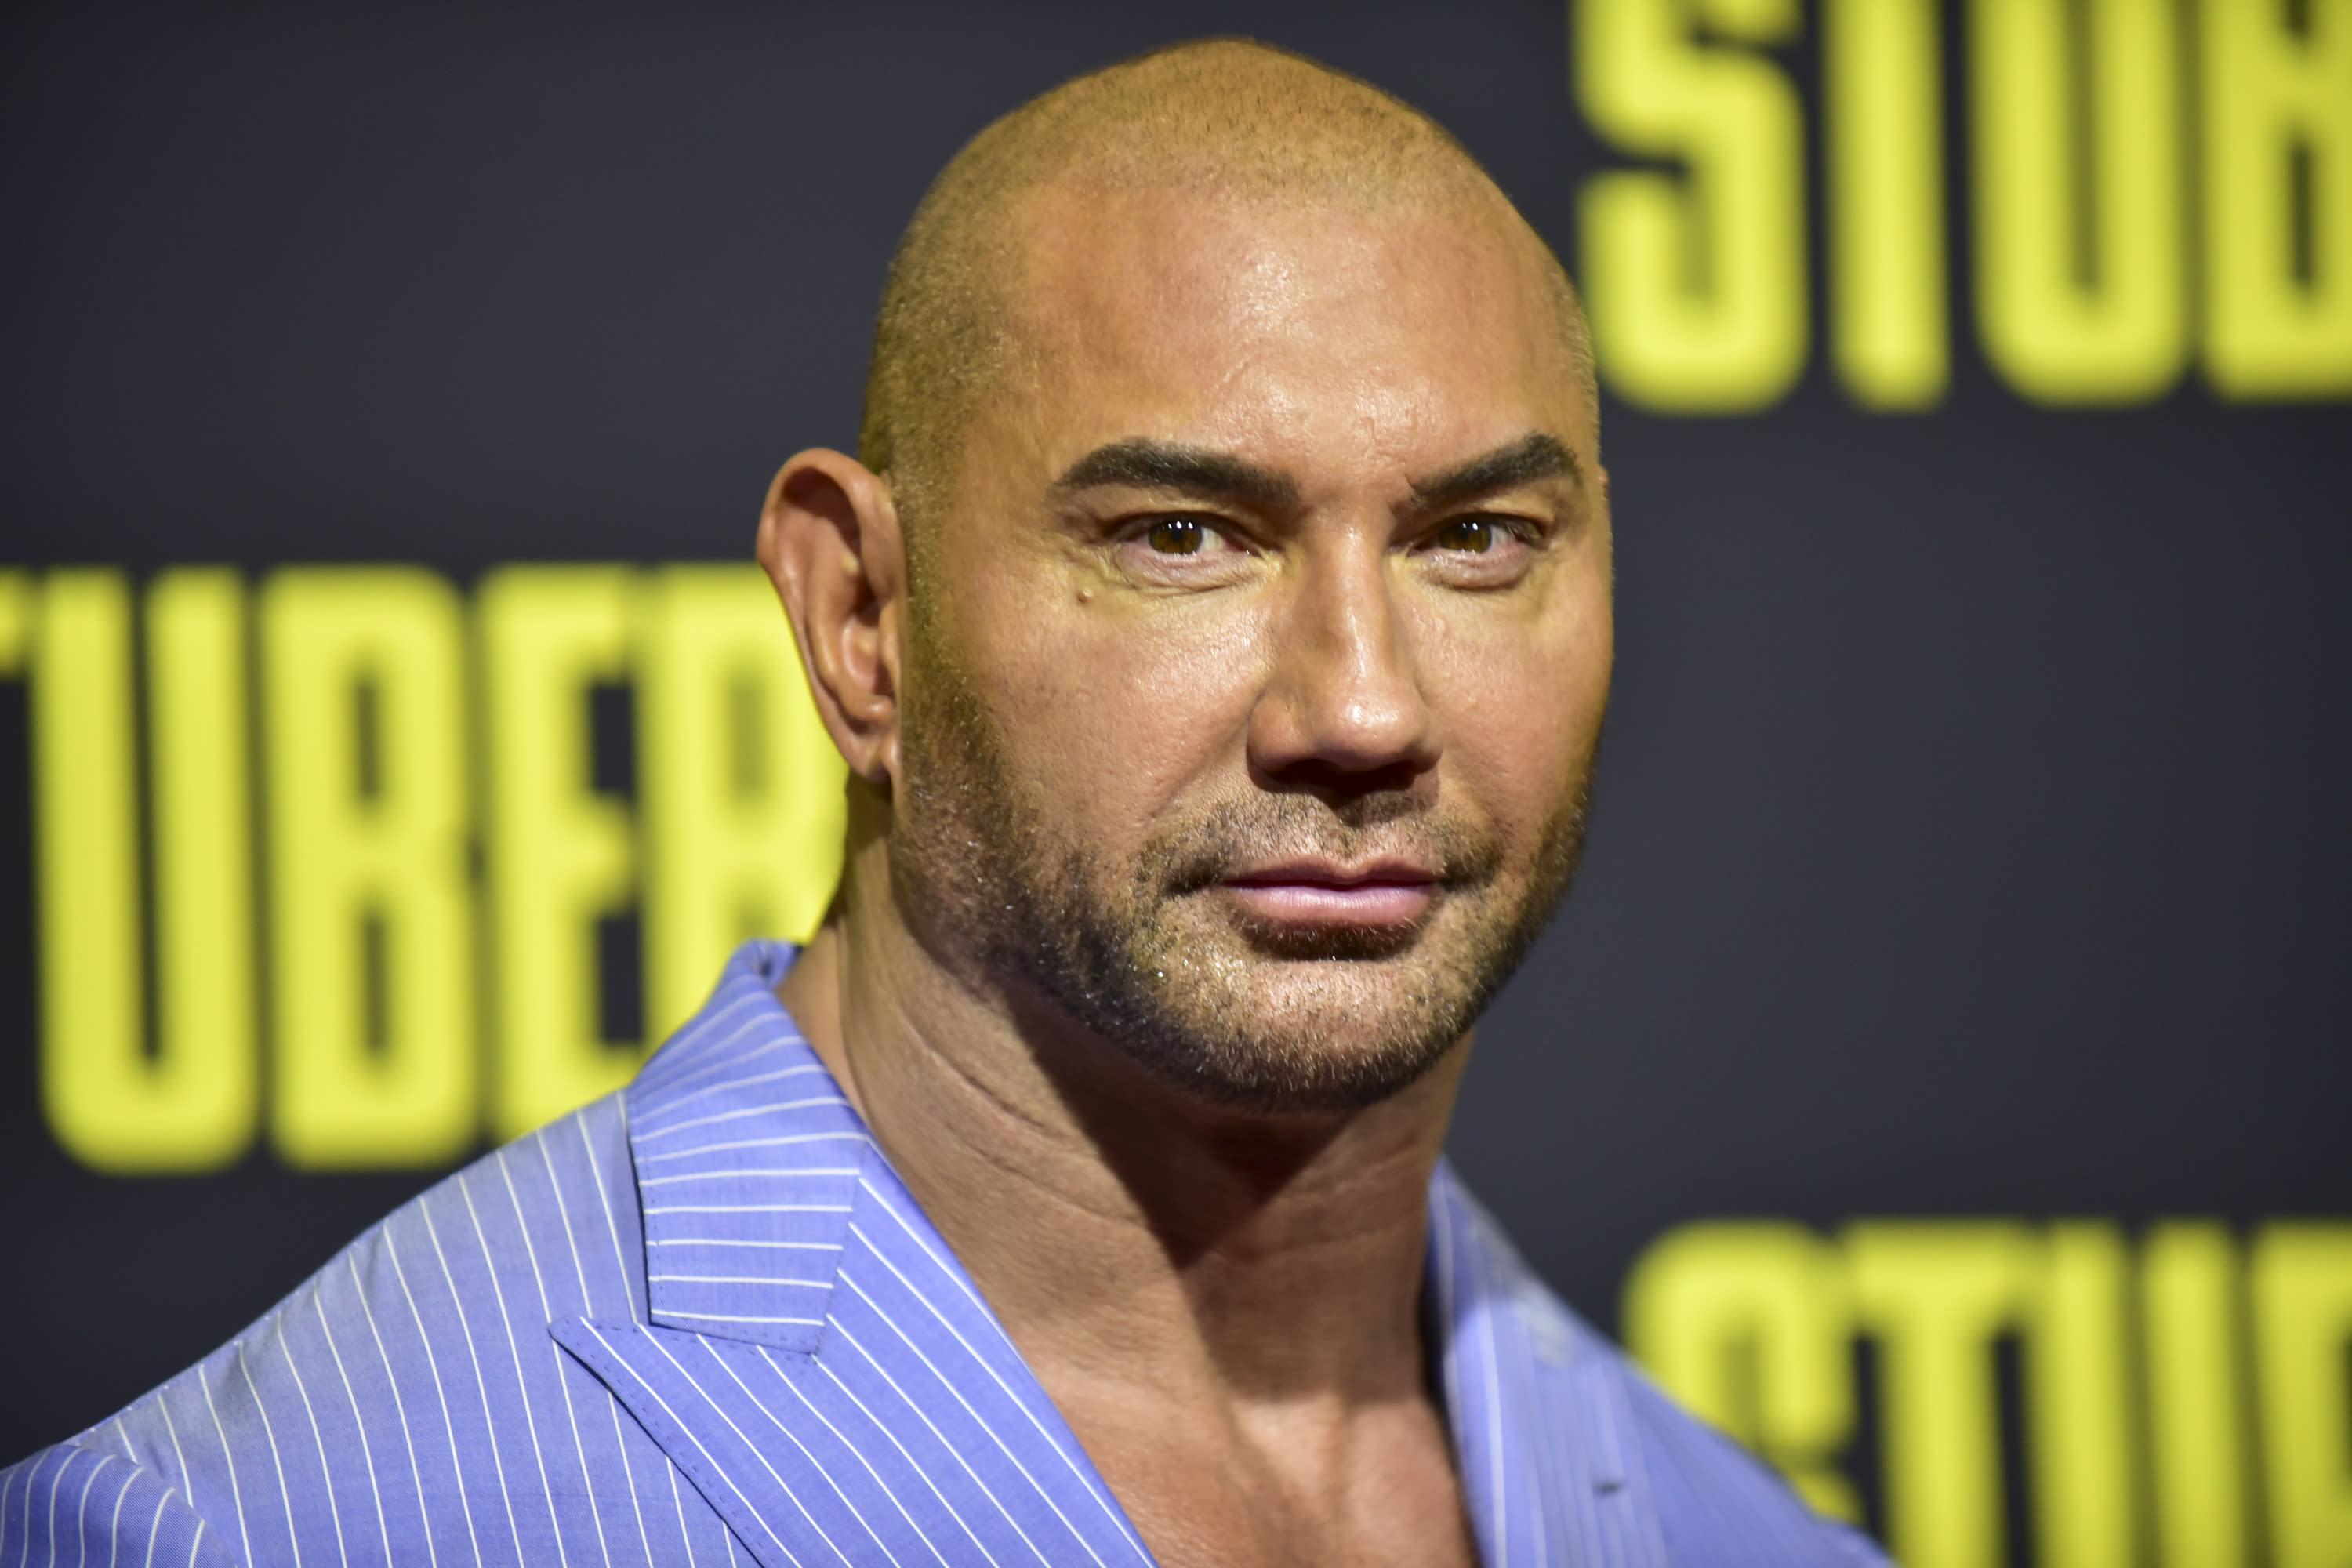 Dave Bautista backs Biden over Trump in new campaign ad: 'It's easy to bully people. That does not make you a tough guy'